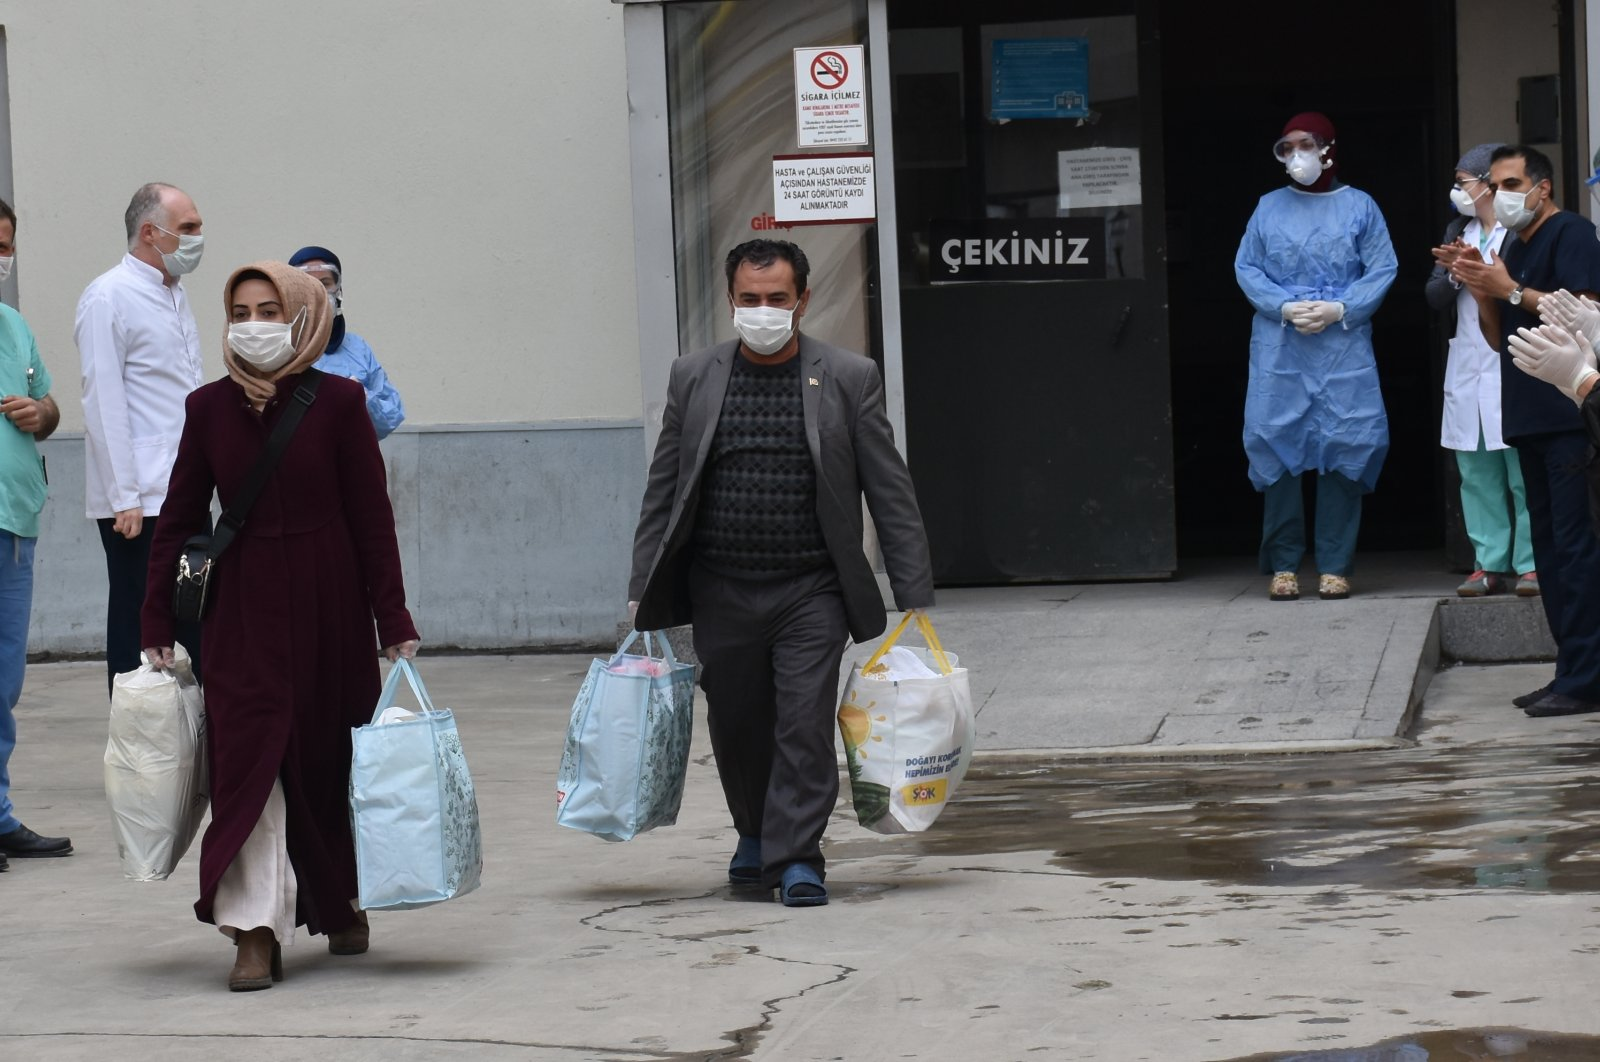 Nurses and doctors wave goodbye to two patients who were discharged from the hospital after they recovered from COVID-19, Erzurum, Saturday, March 4, 2020. (AA Photo)